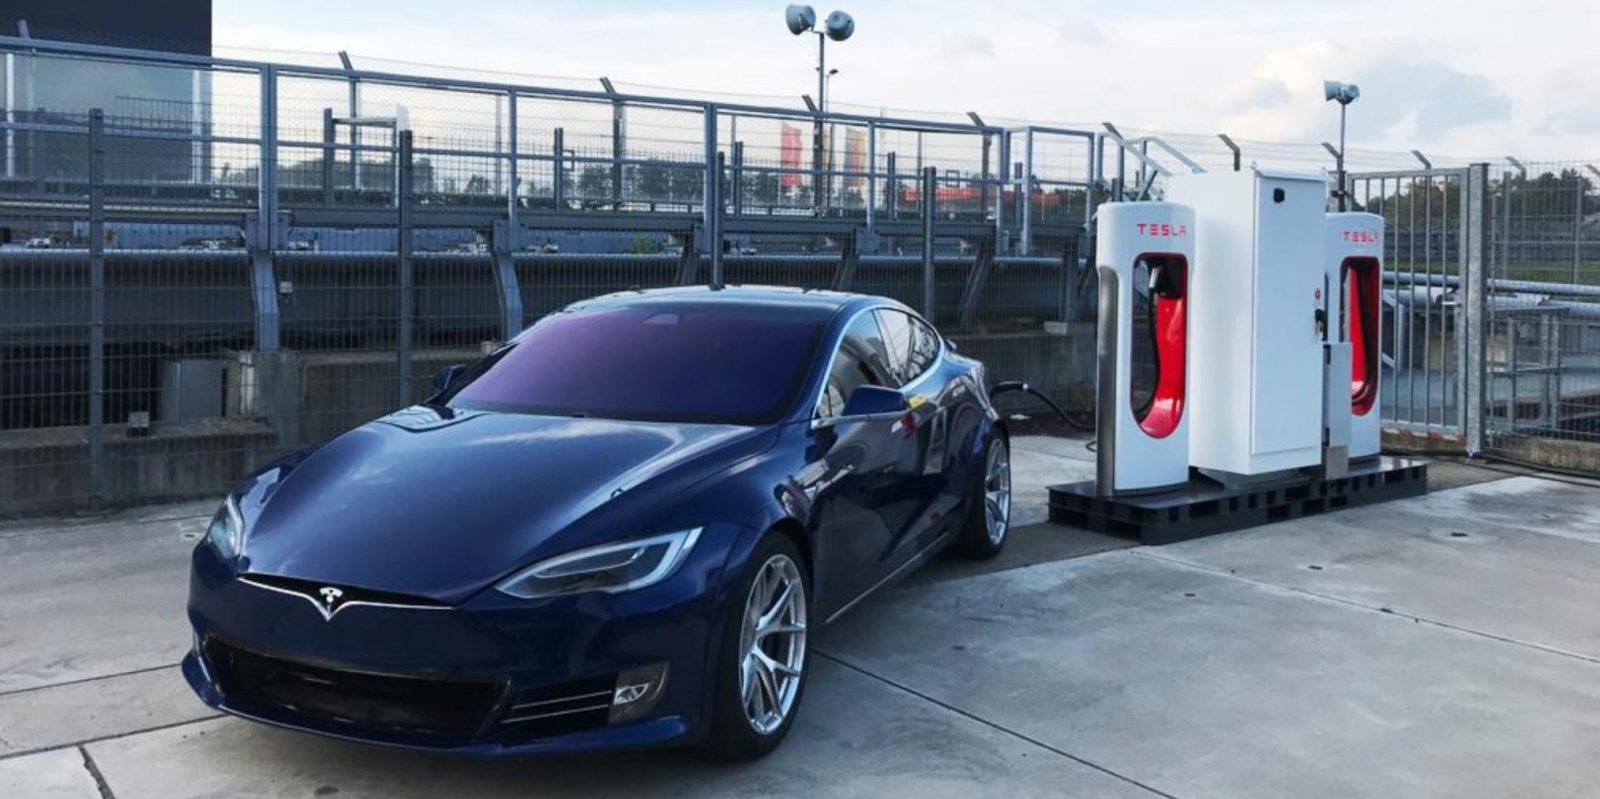 Tesla installs a Supercharger station at Nürburgring